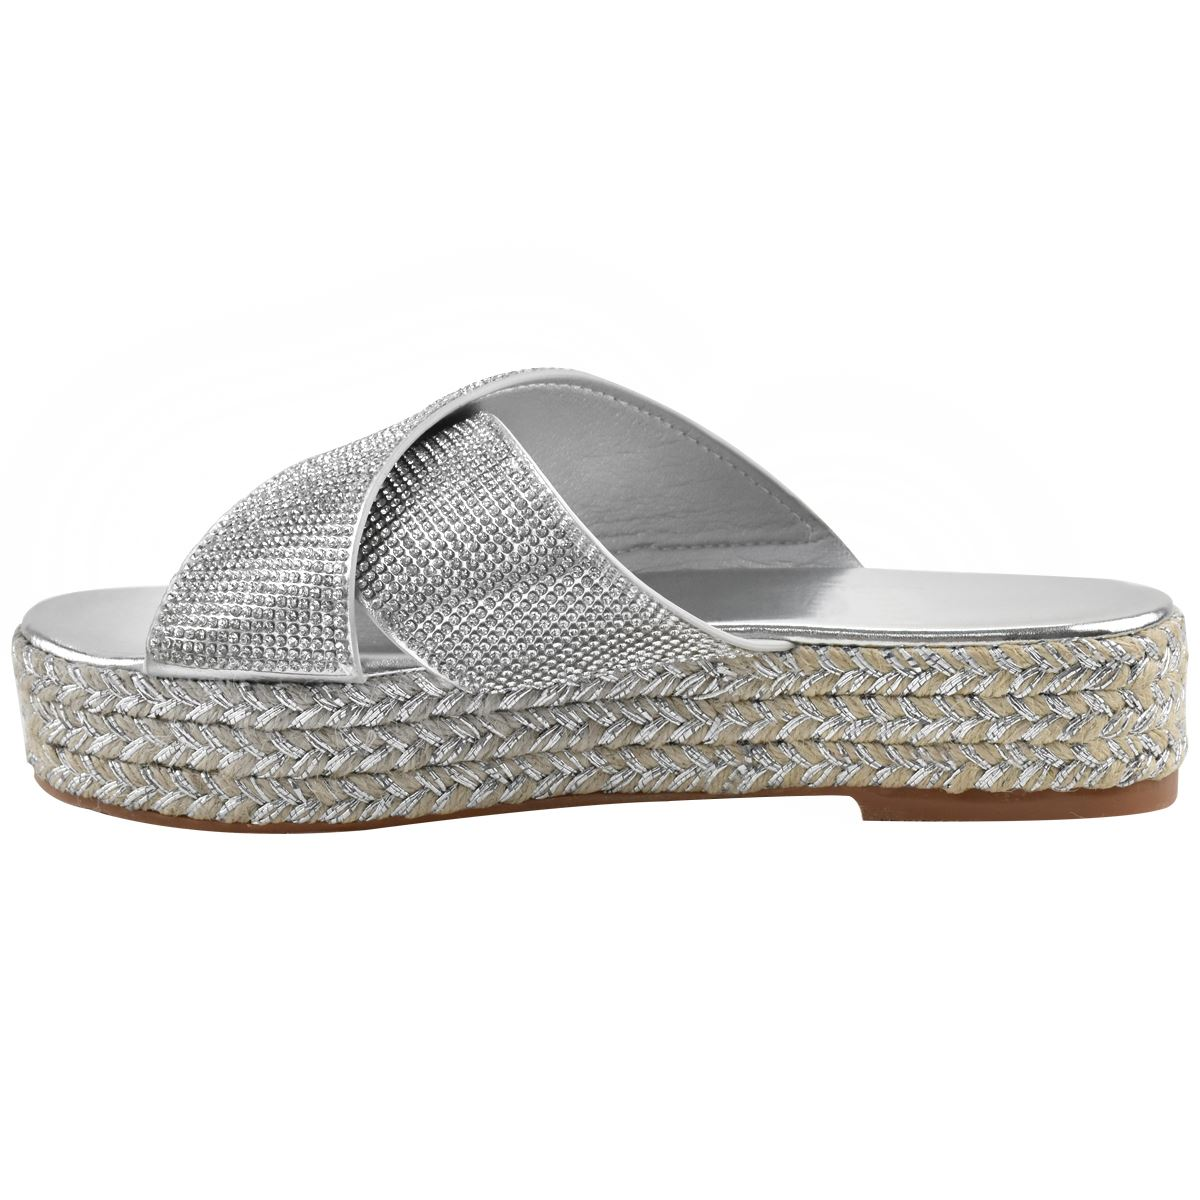 Womens-Diamante-Slip-On-Sandals-Flatforms-Sparkly-Platform-Summer-Size-UK thumbnail 15